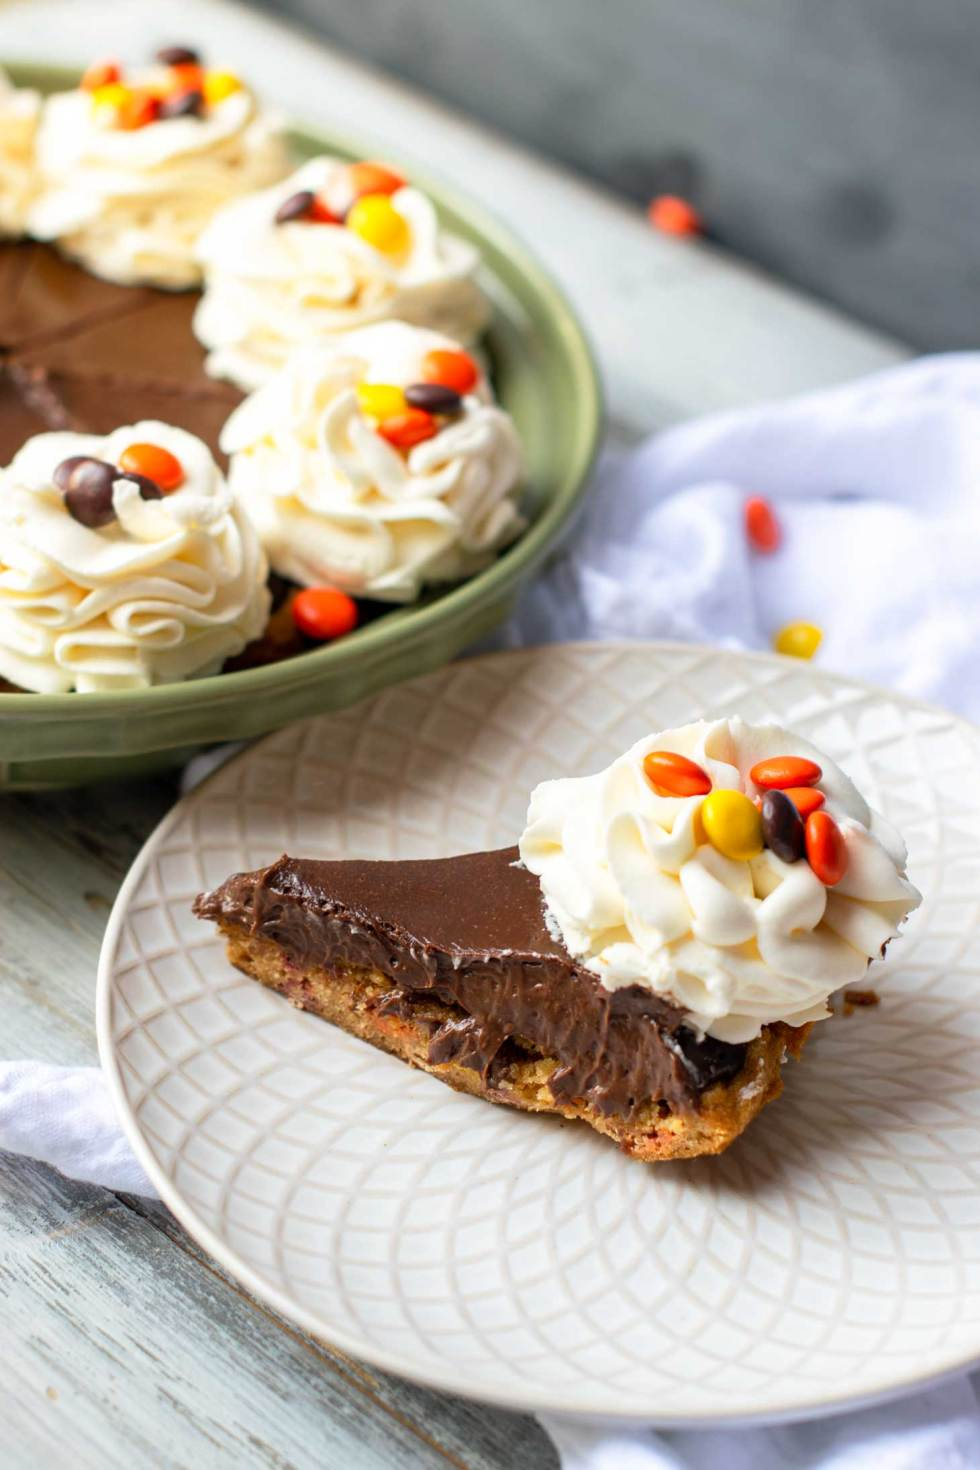 Reese's pie is a simple peanut butter pie with stabilized whipped cream flowers and Reese's Pieces